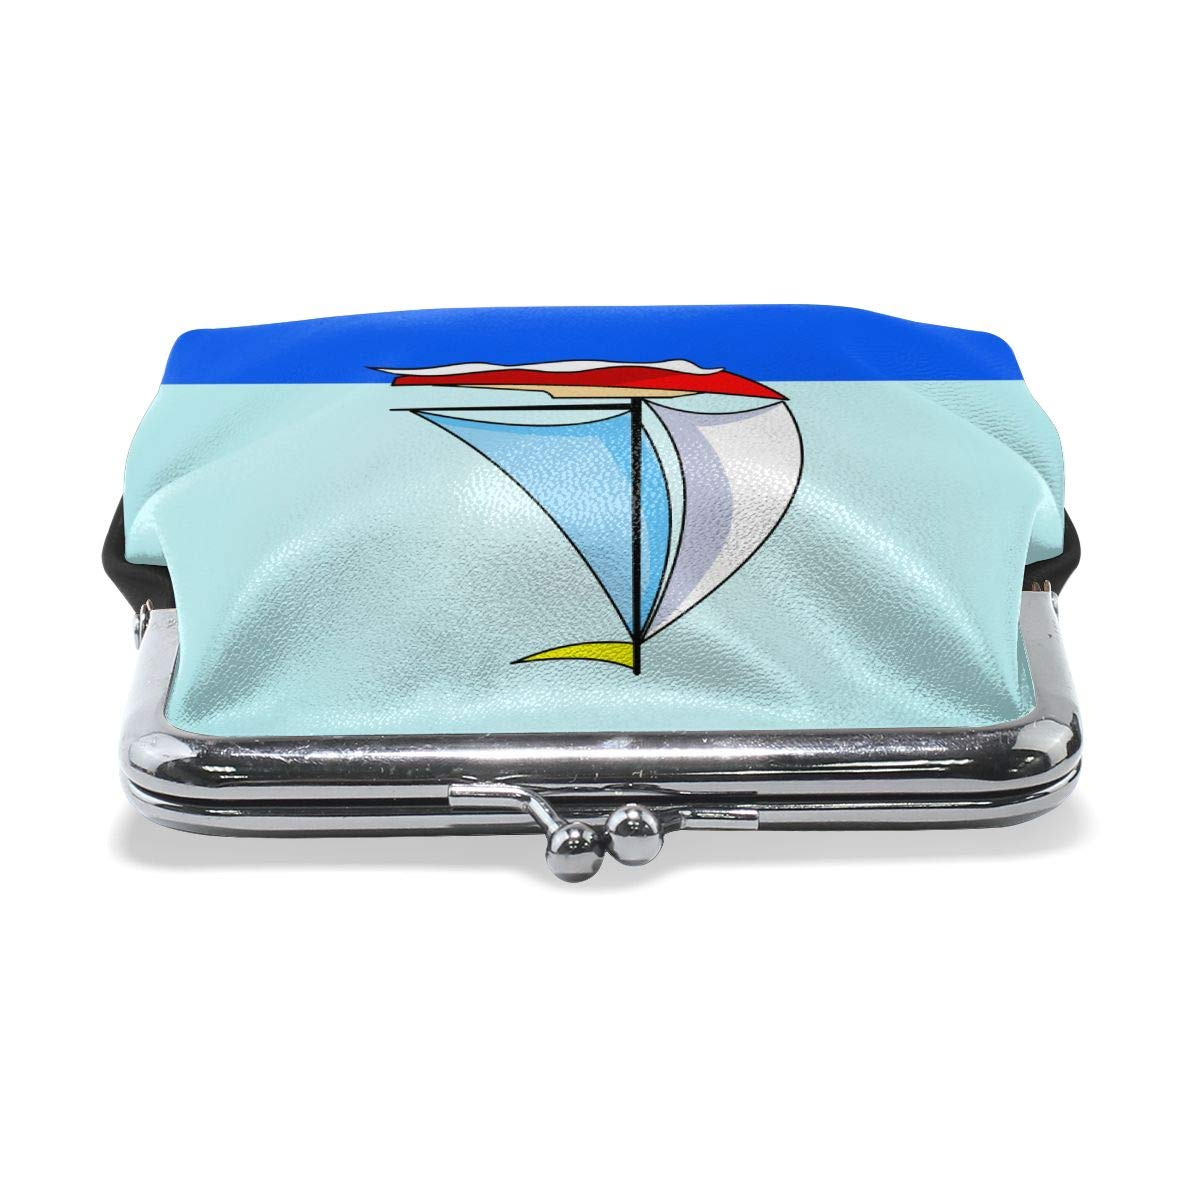 Classic Sail Boat Waves Credit Cards Buckle Coin Purse For Womens